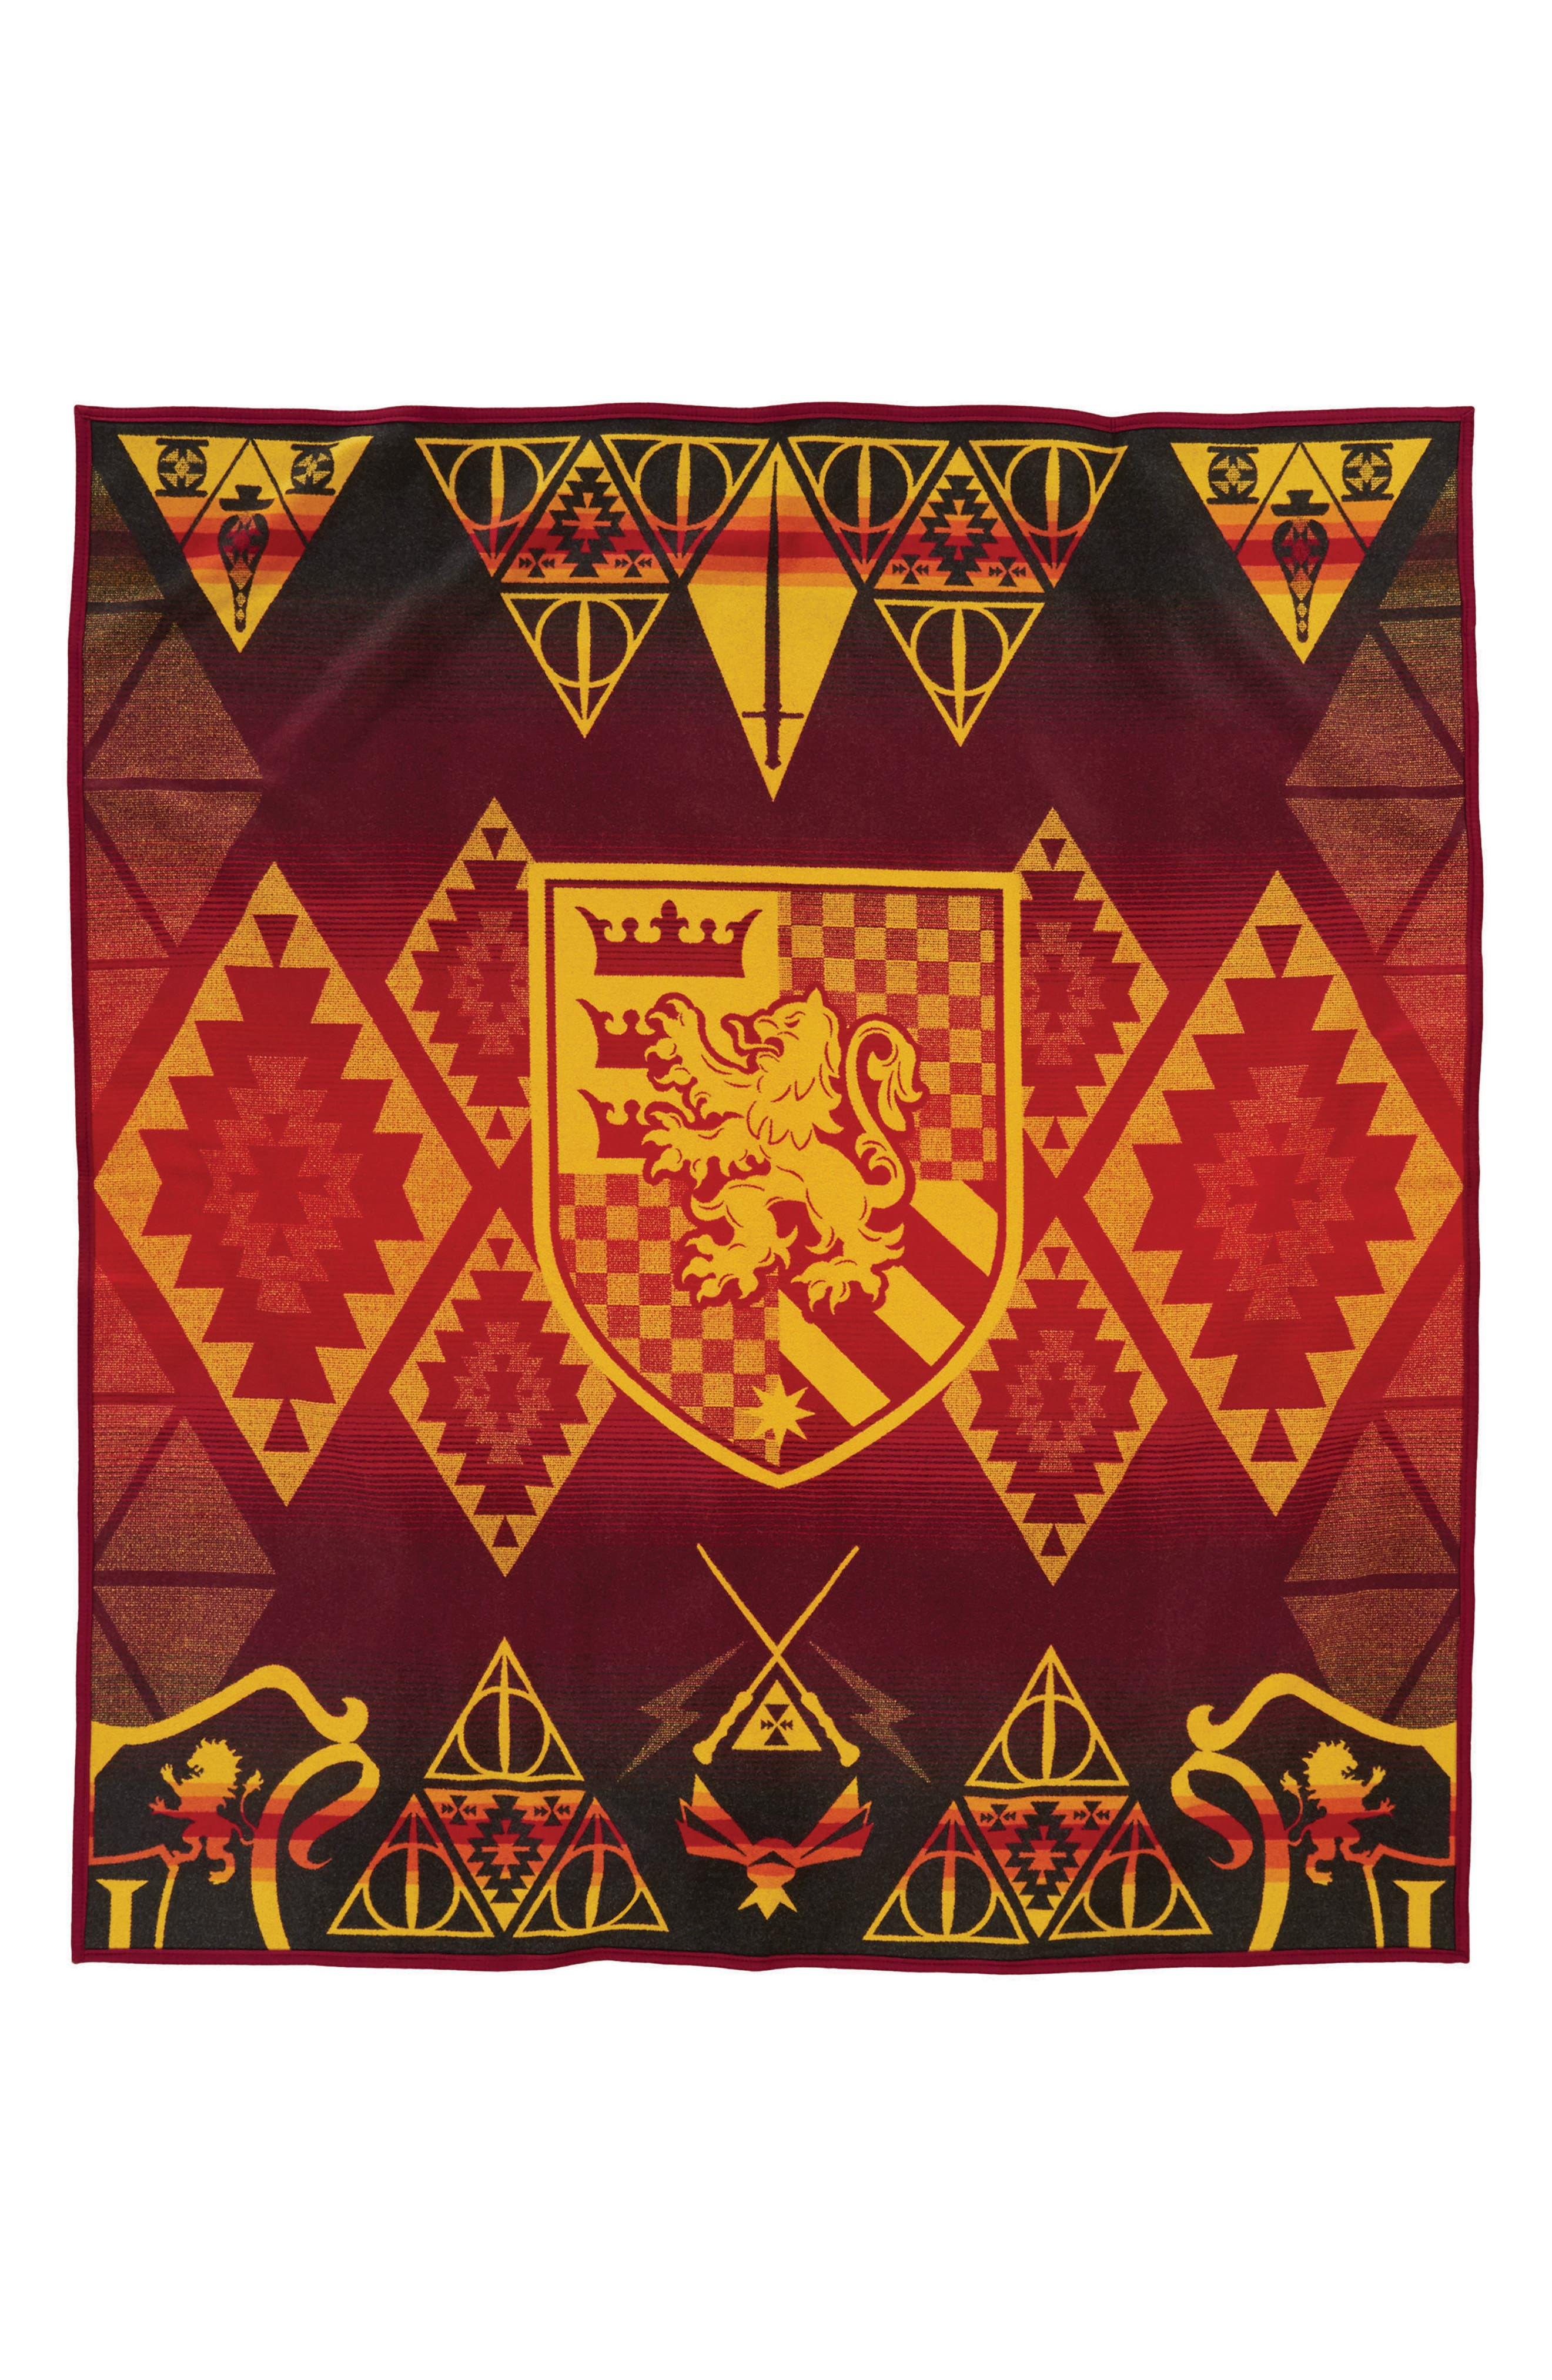 Alternate Image 1 Selected - Pendleton Harry Potter - Gryffindor Blanket